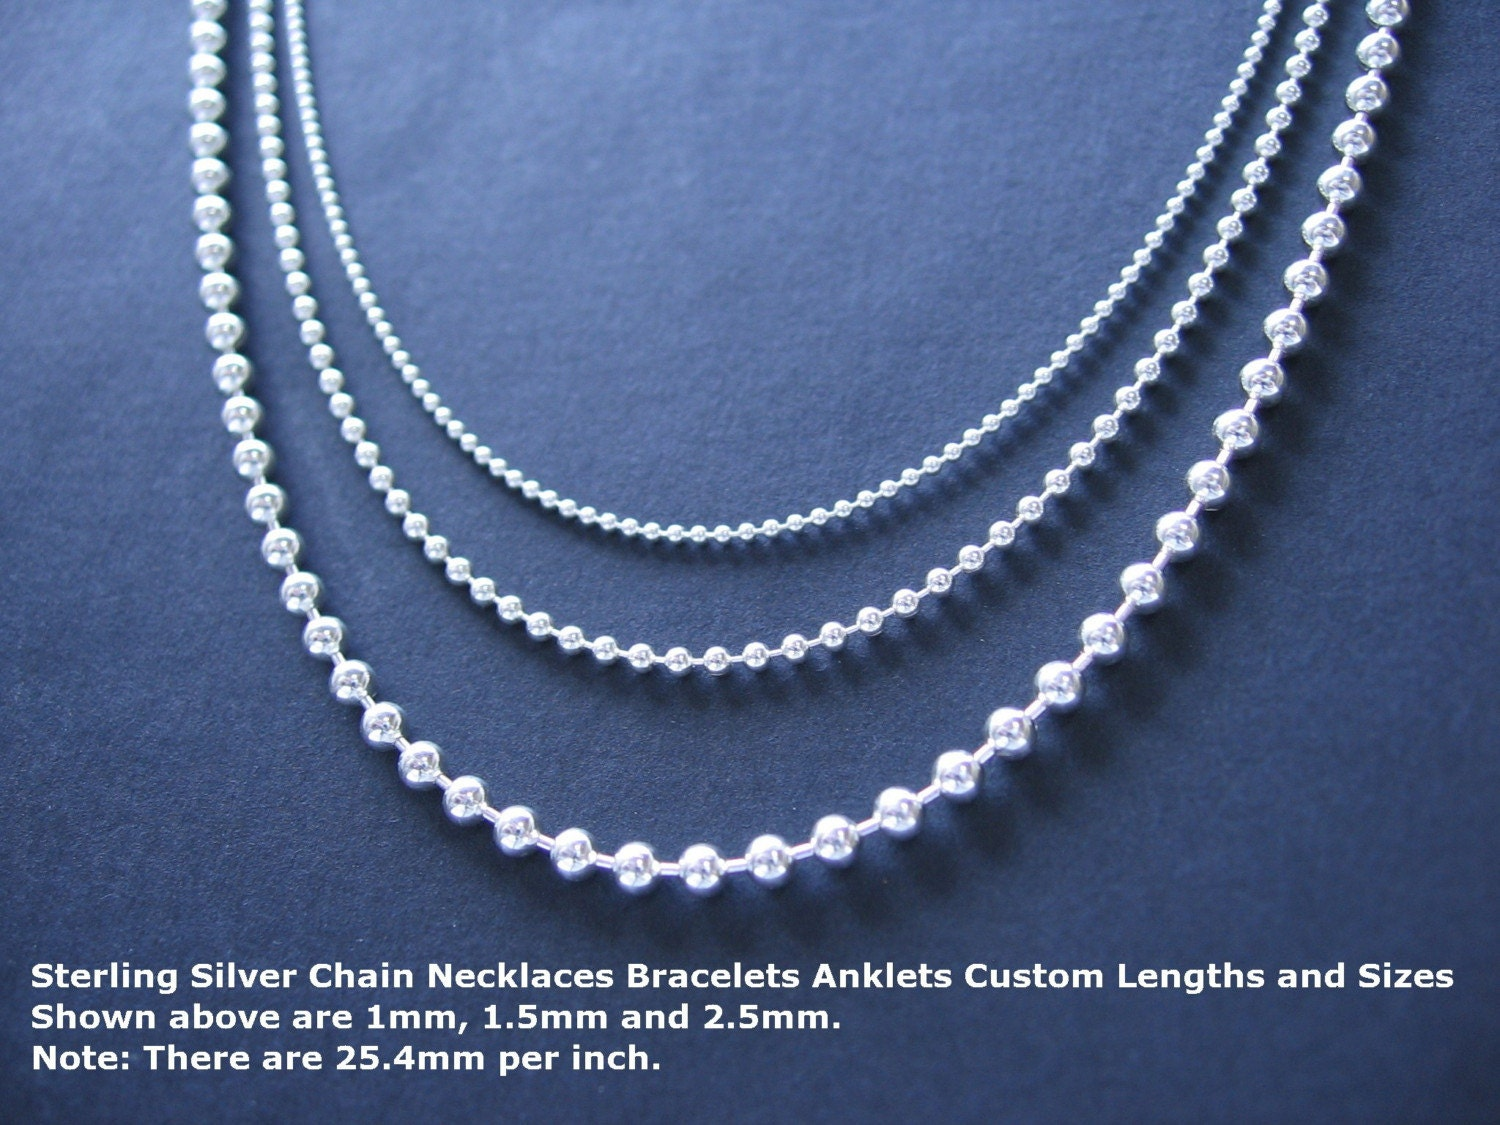 sterling silver bead chain necklace custom length standard